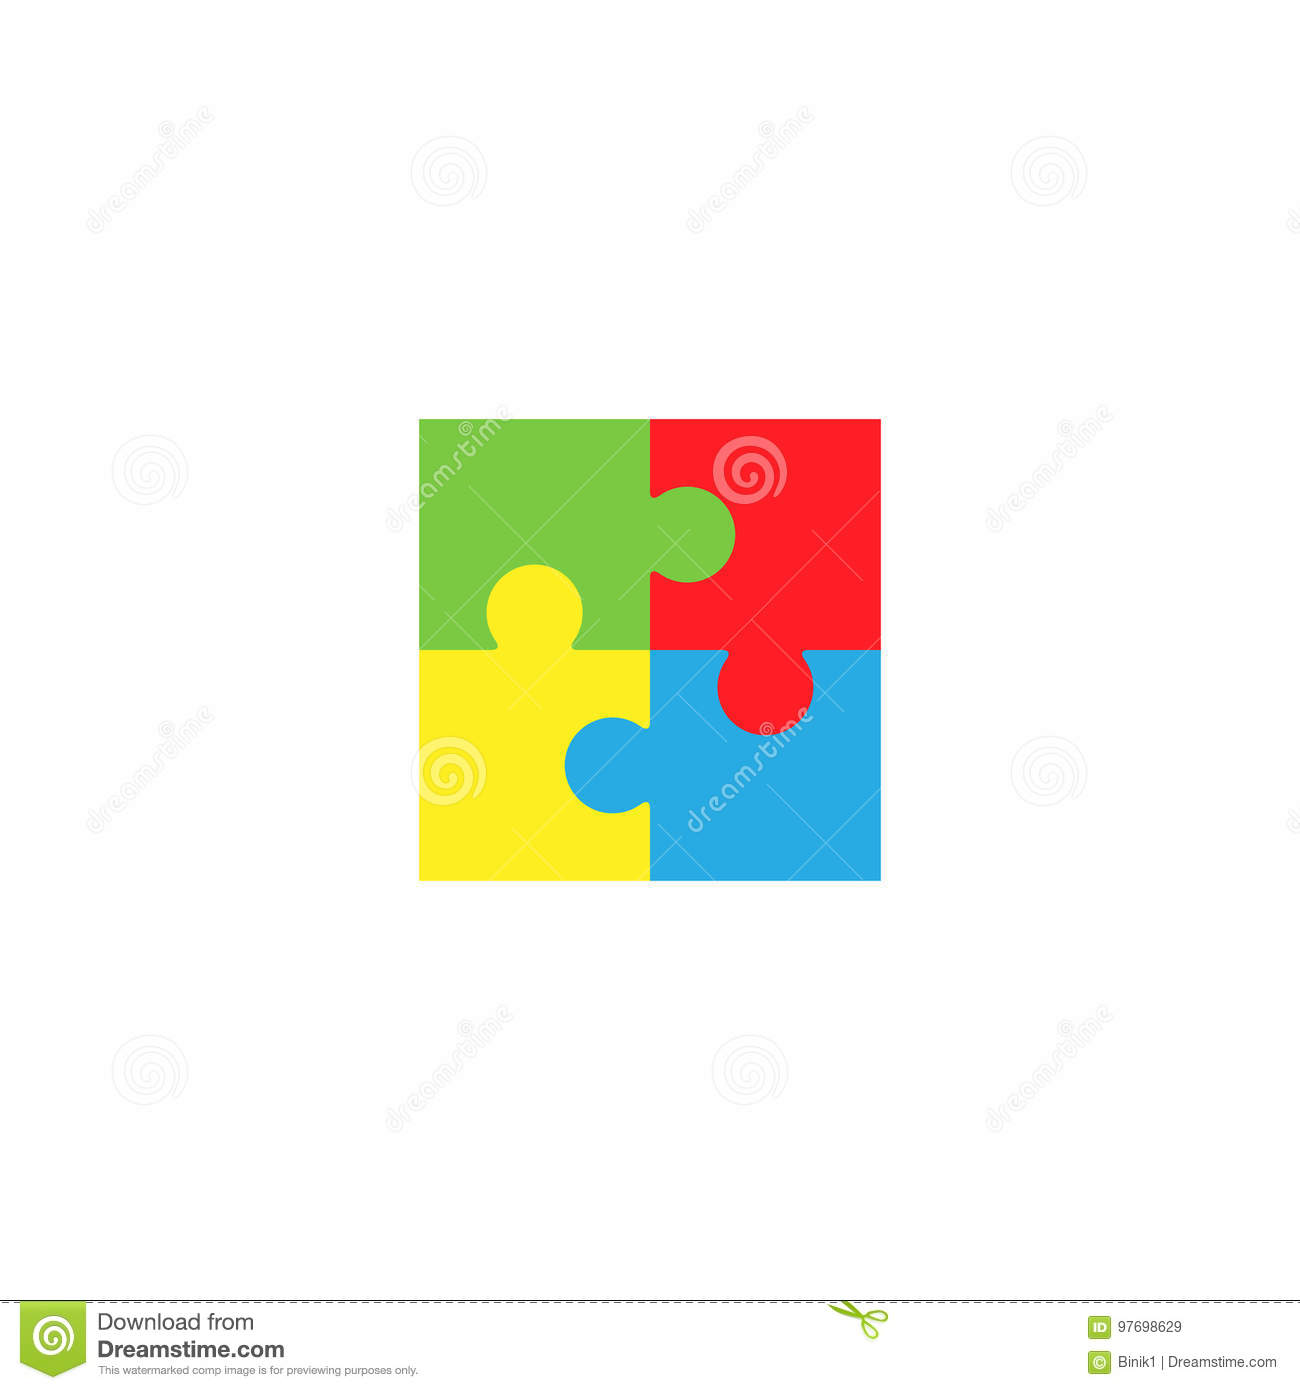 Colorful Jigsaw Puzzle Pieces Stock Vector - Illustration of graphic